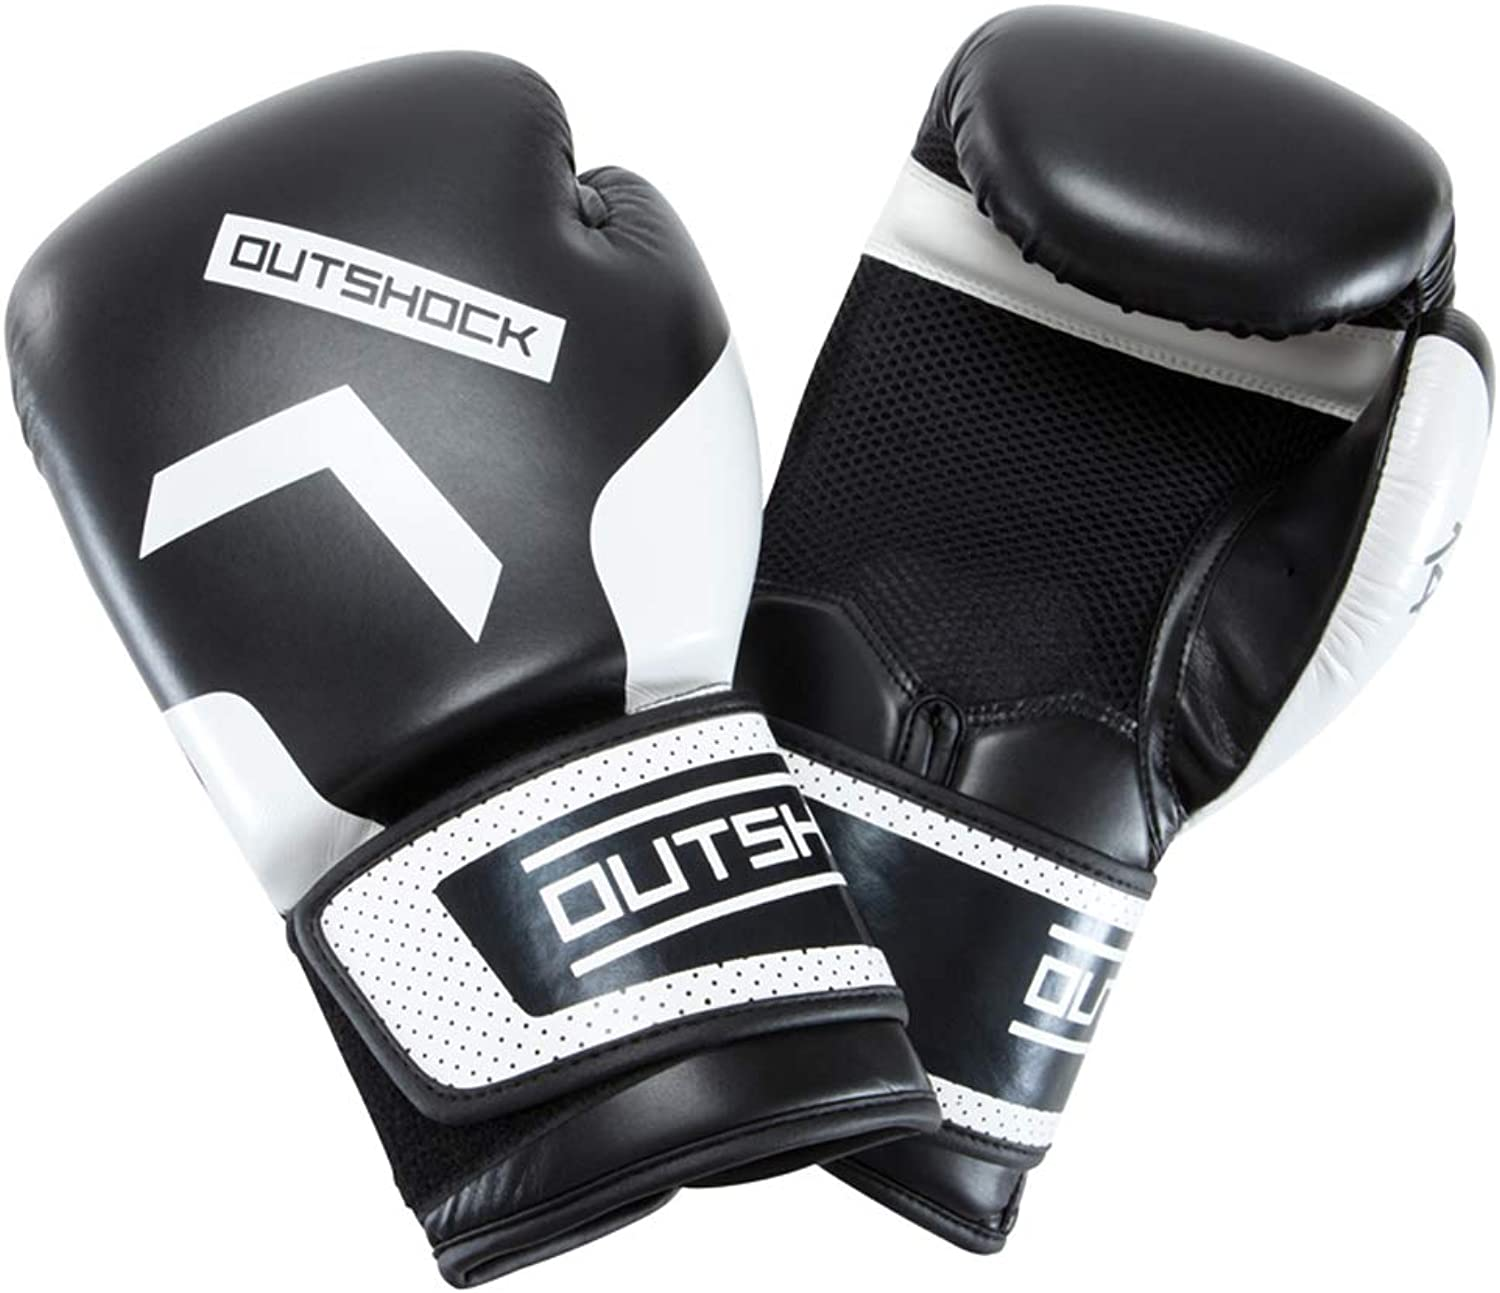 NZ- boxing gloves Boxhandschuhe Muay Thai Thai Thai Training Sparring Boxsack Mitts Kickboxen Kampf gegen 6 Unzen, 8 Unzen, 10 Unzen, 14 Unzen, 16 Unzen, Trainingsboxhandschuhe B07KP6NQWY  Moderner Modus 82b20f